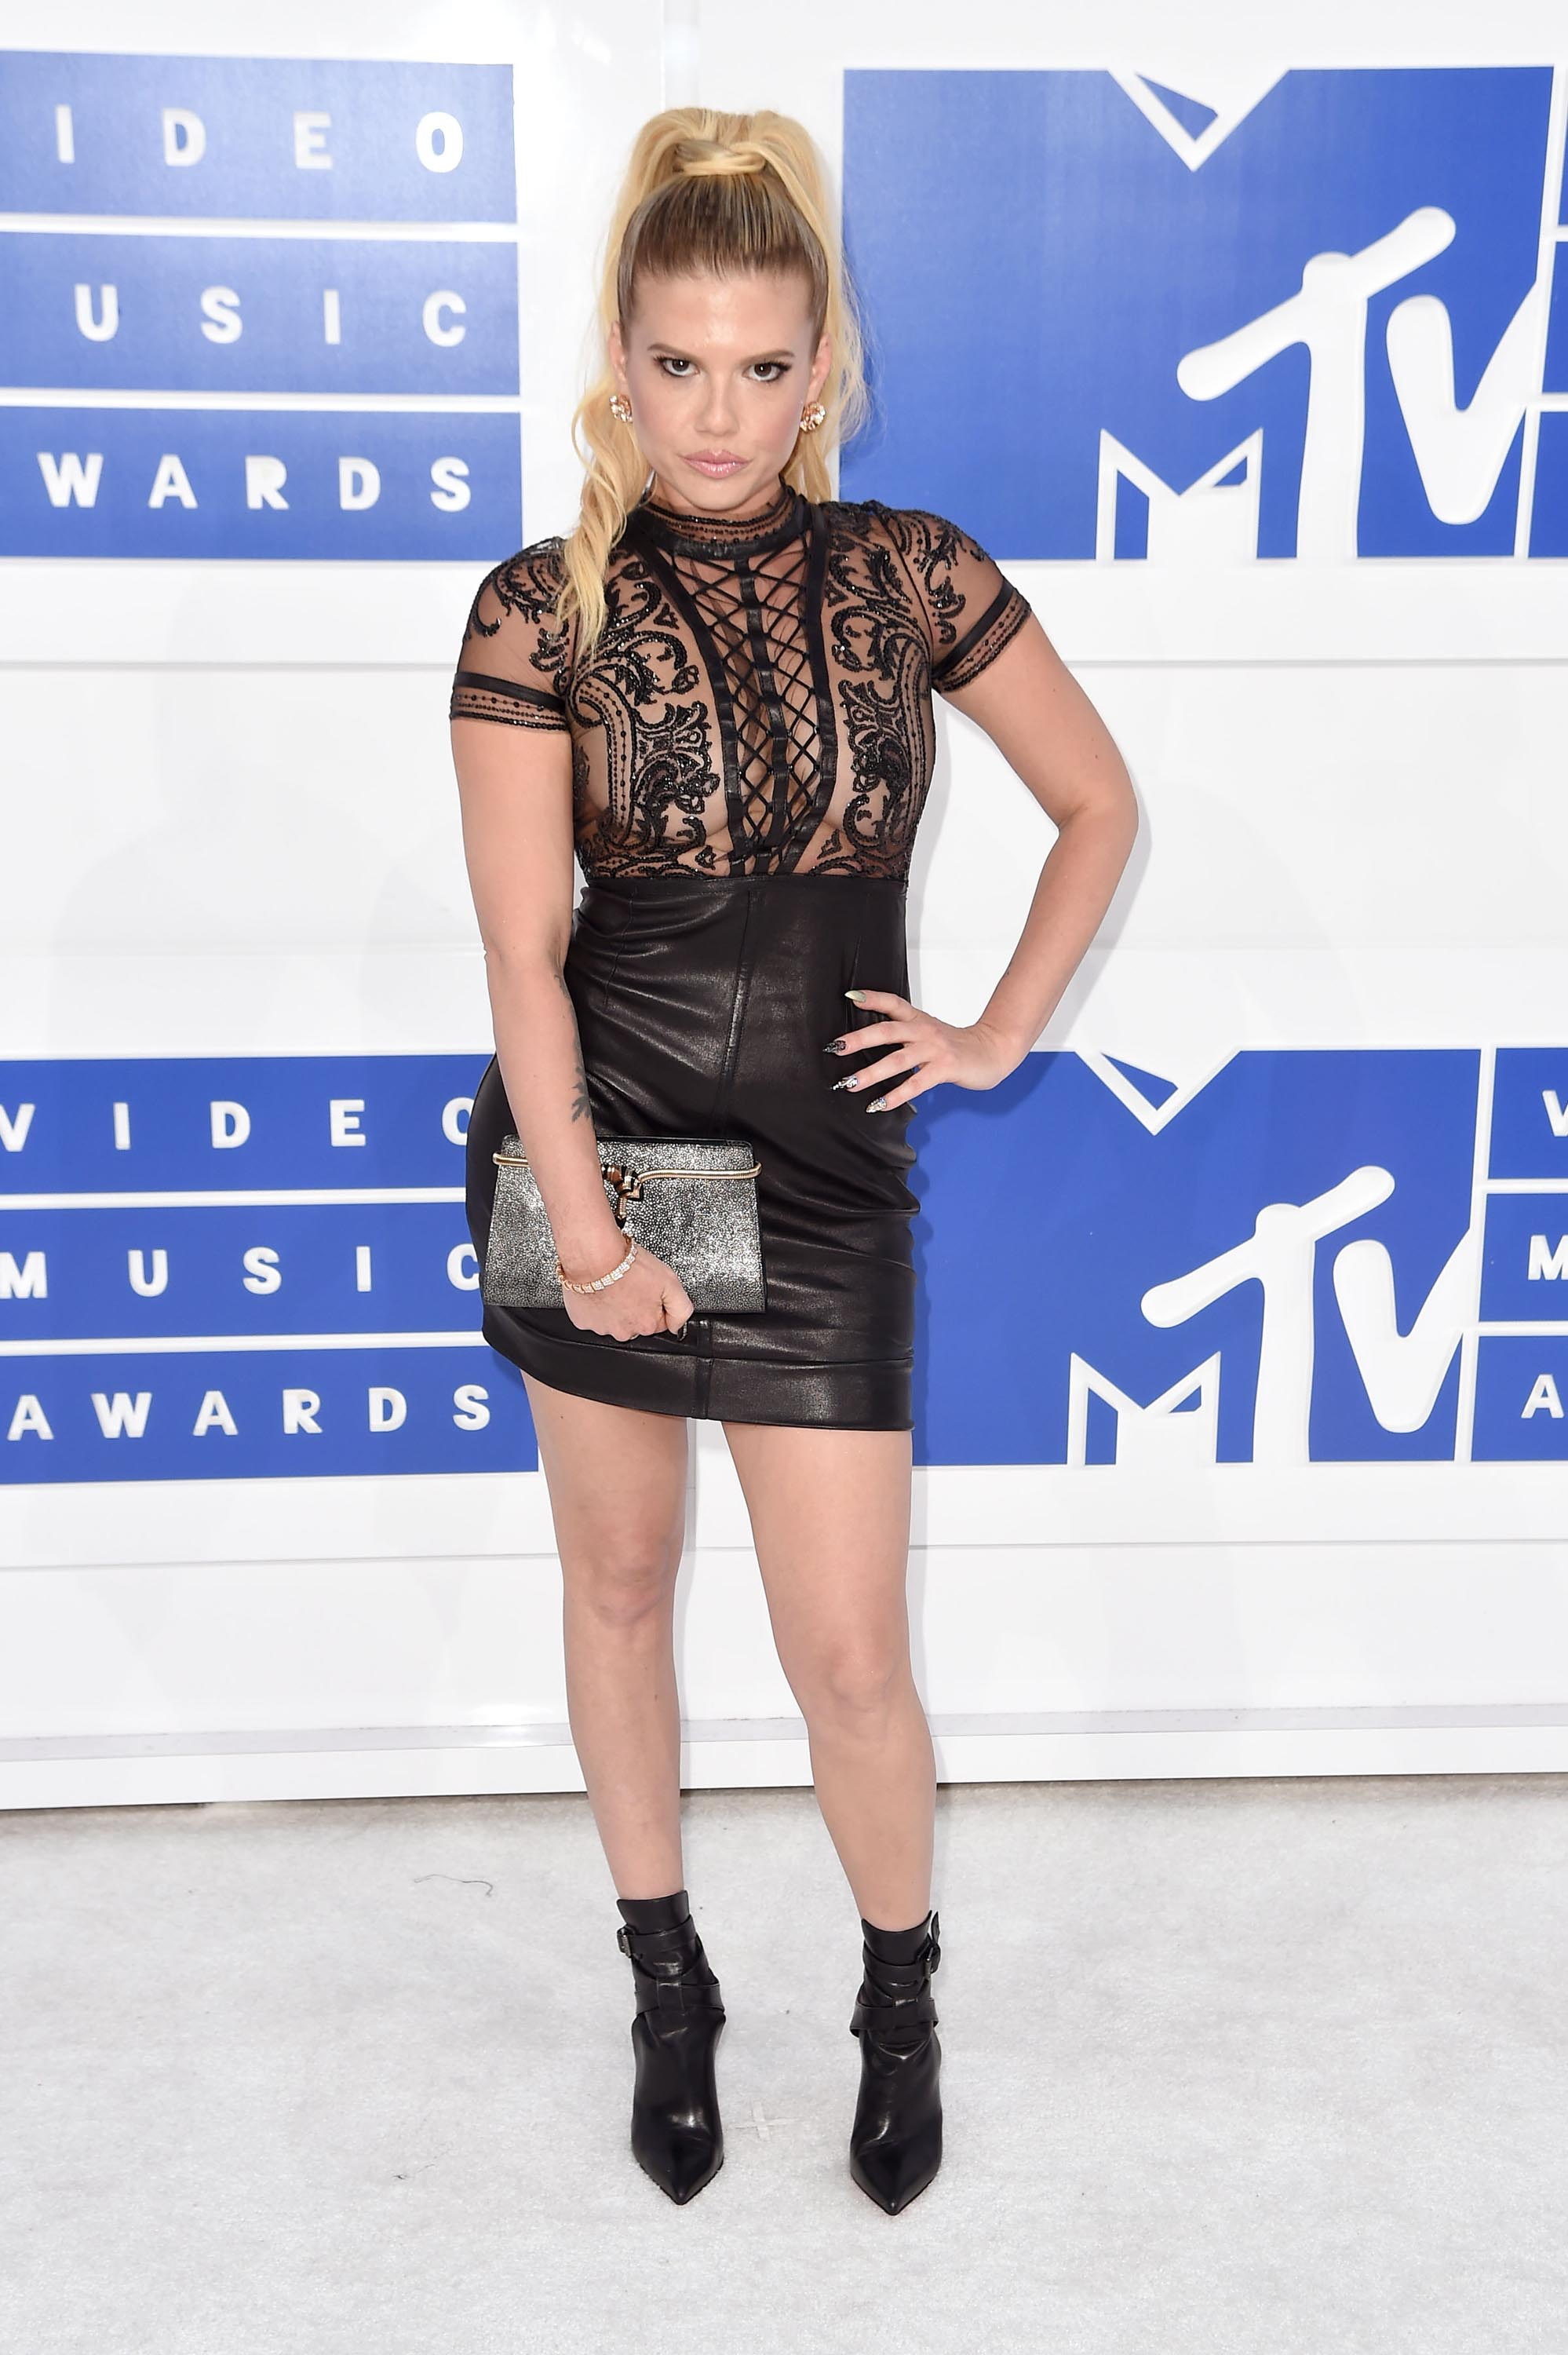 Chanel West Coast Leather Skirt Wwwpicsbudcom